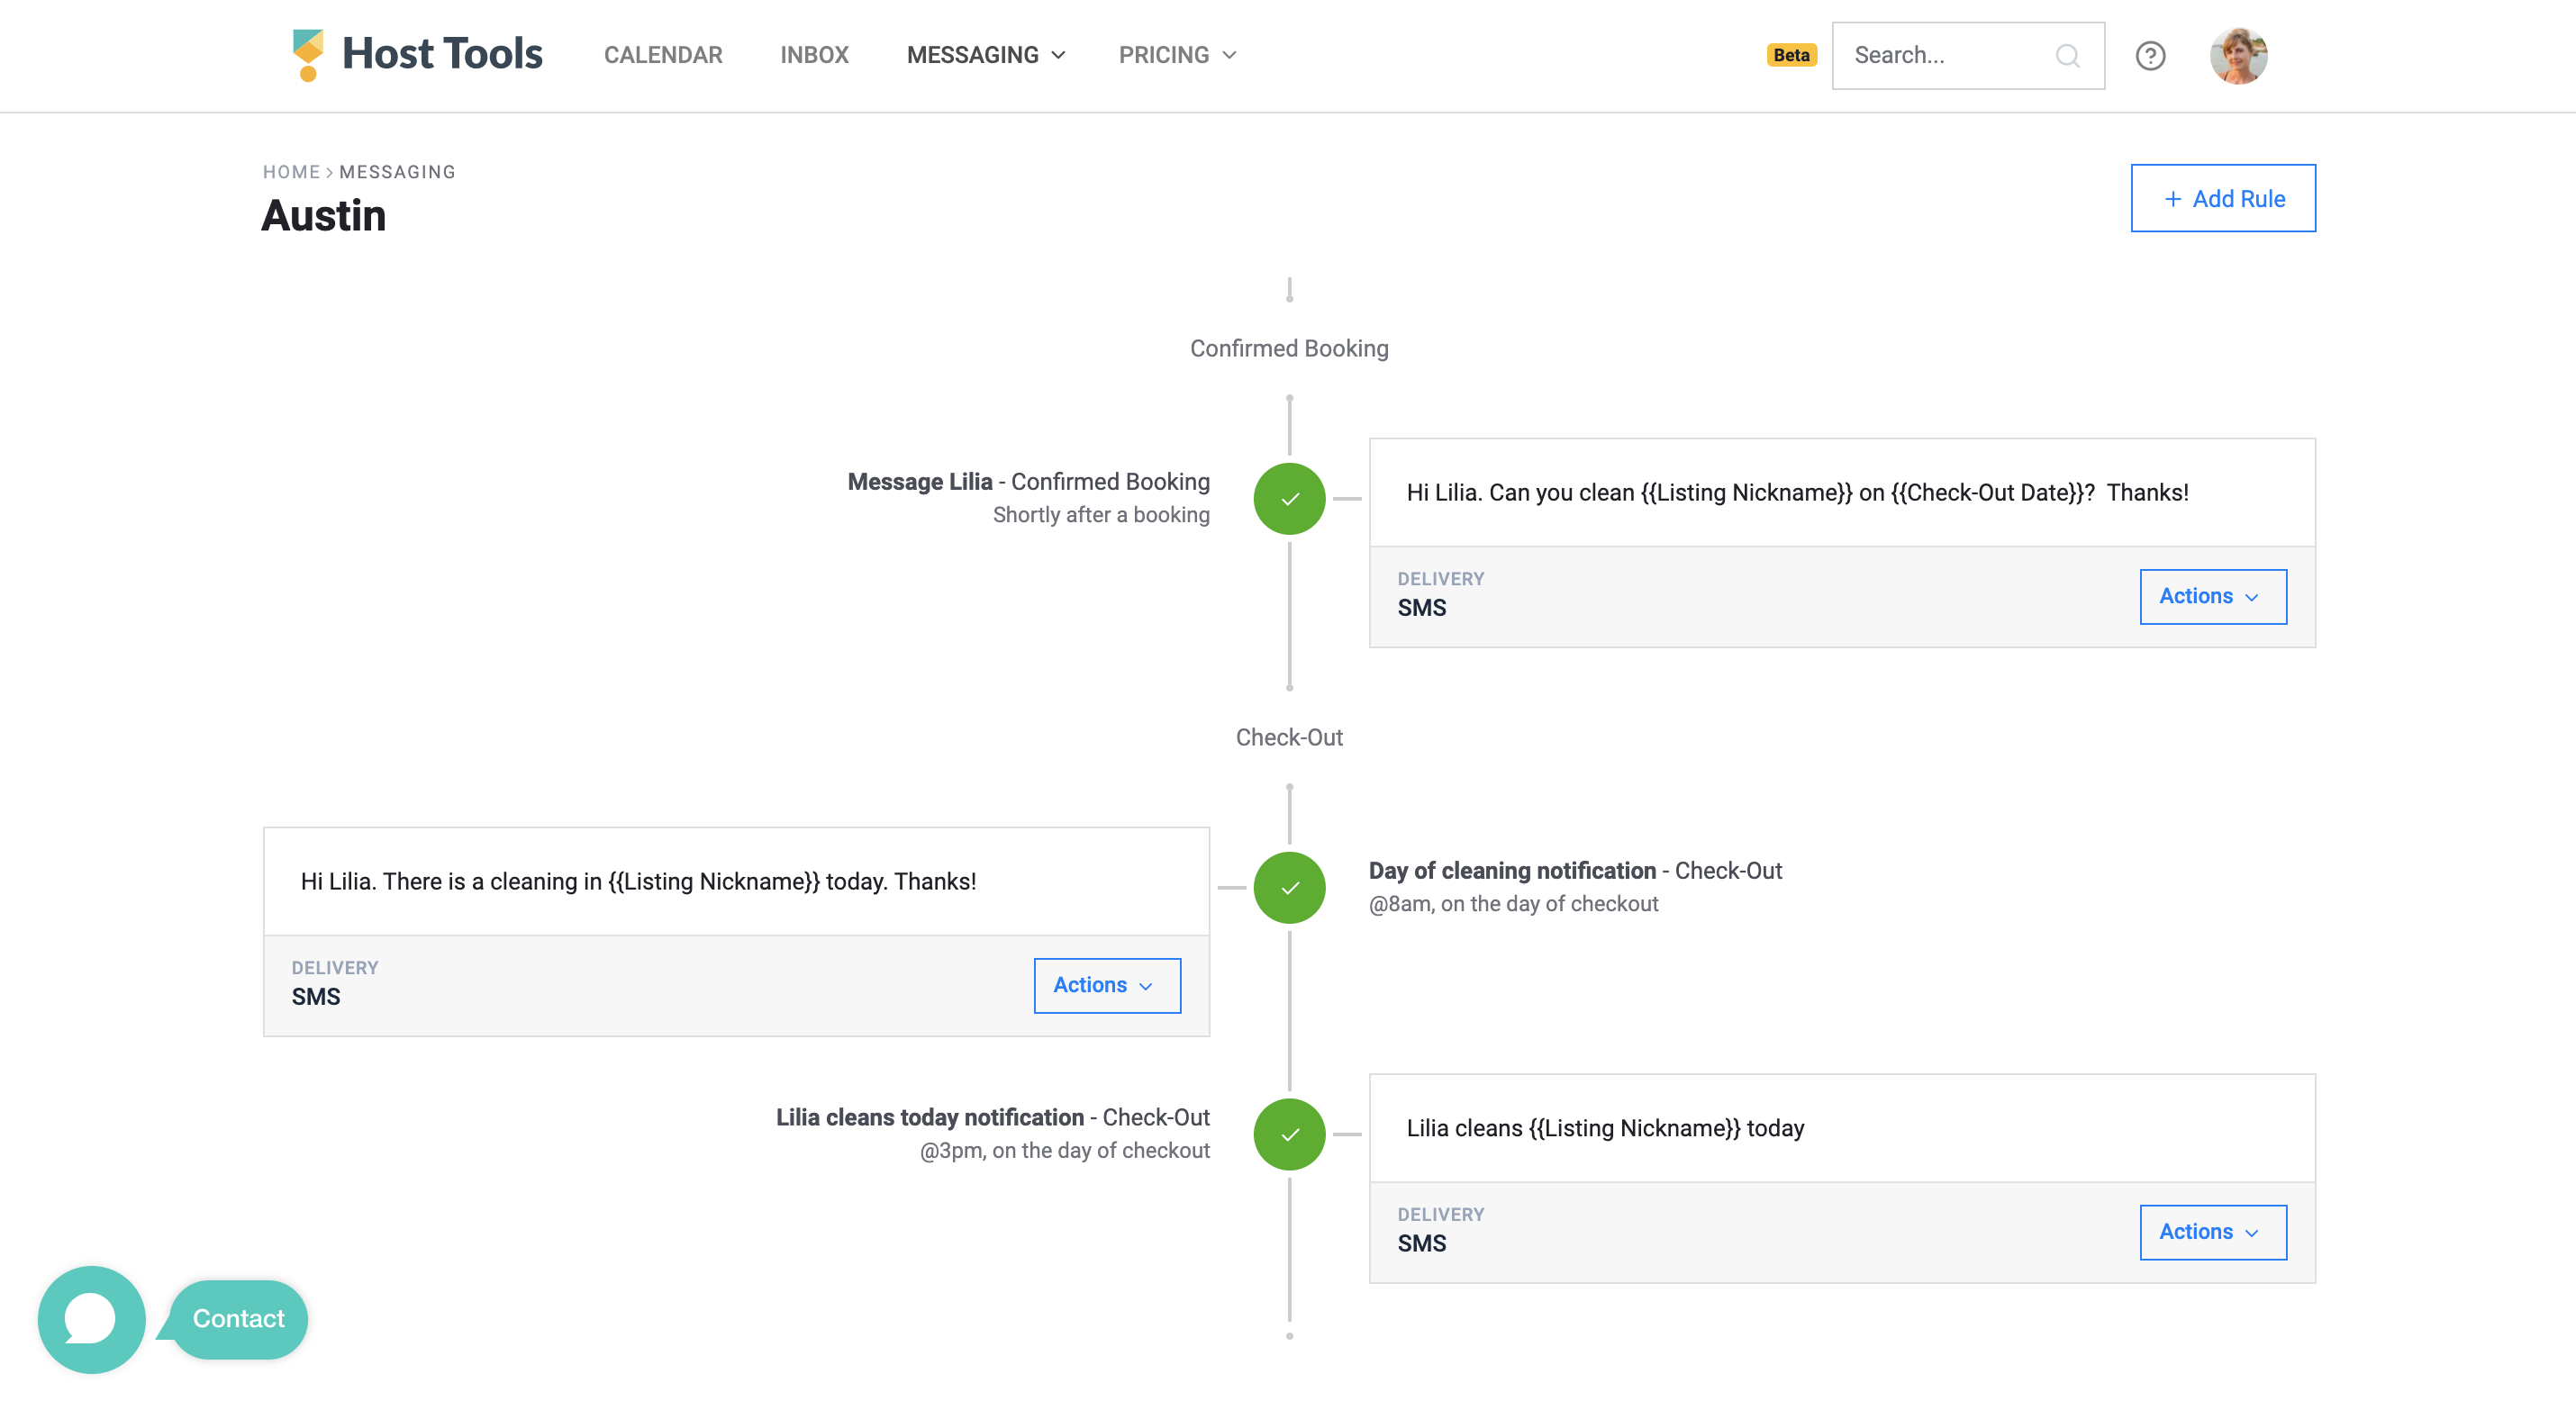 03 Cleaner notification message flow on Host Tools